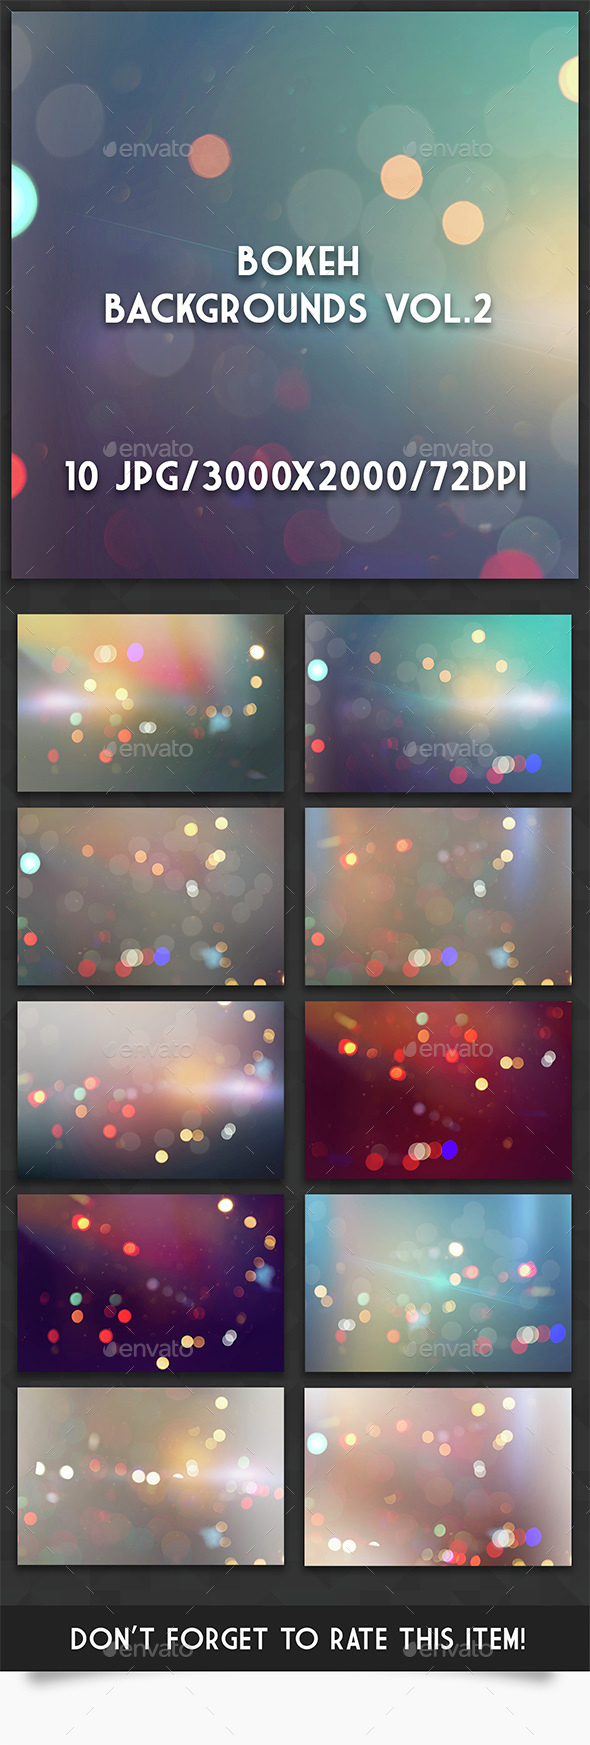 Bokeh Backgrounds Vol.2 - Abstract Backgrounds